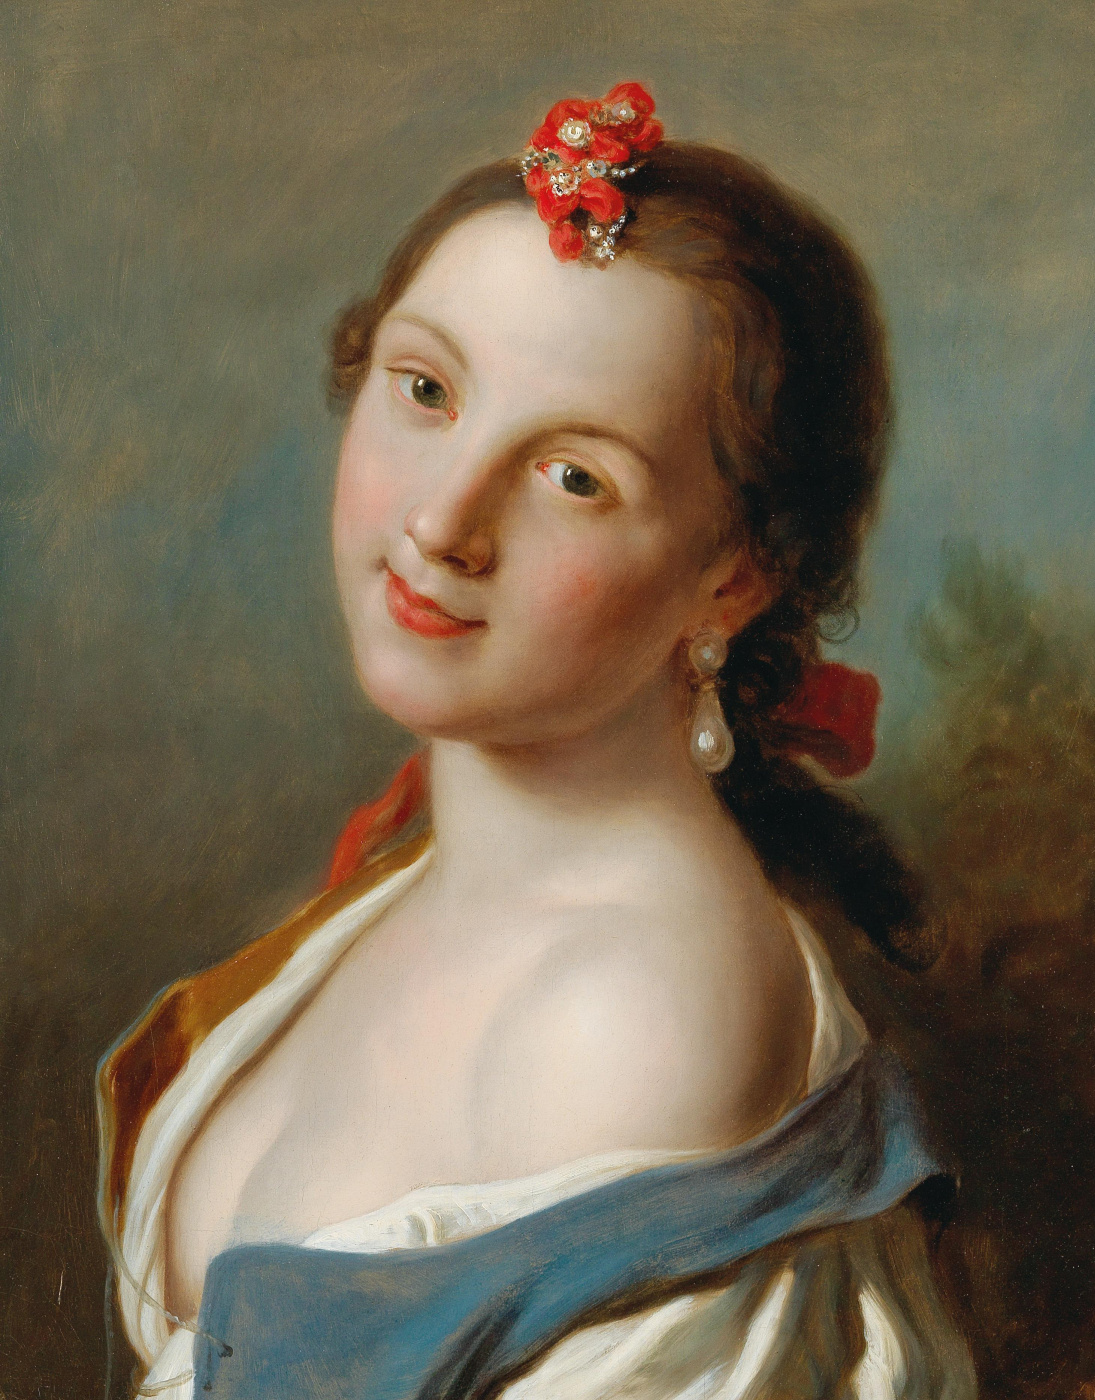 Pietro Rotary. Portrait of a young woman